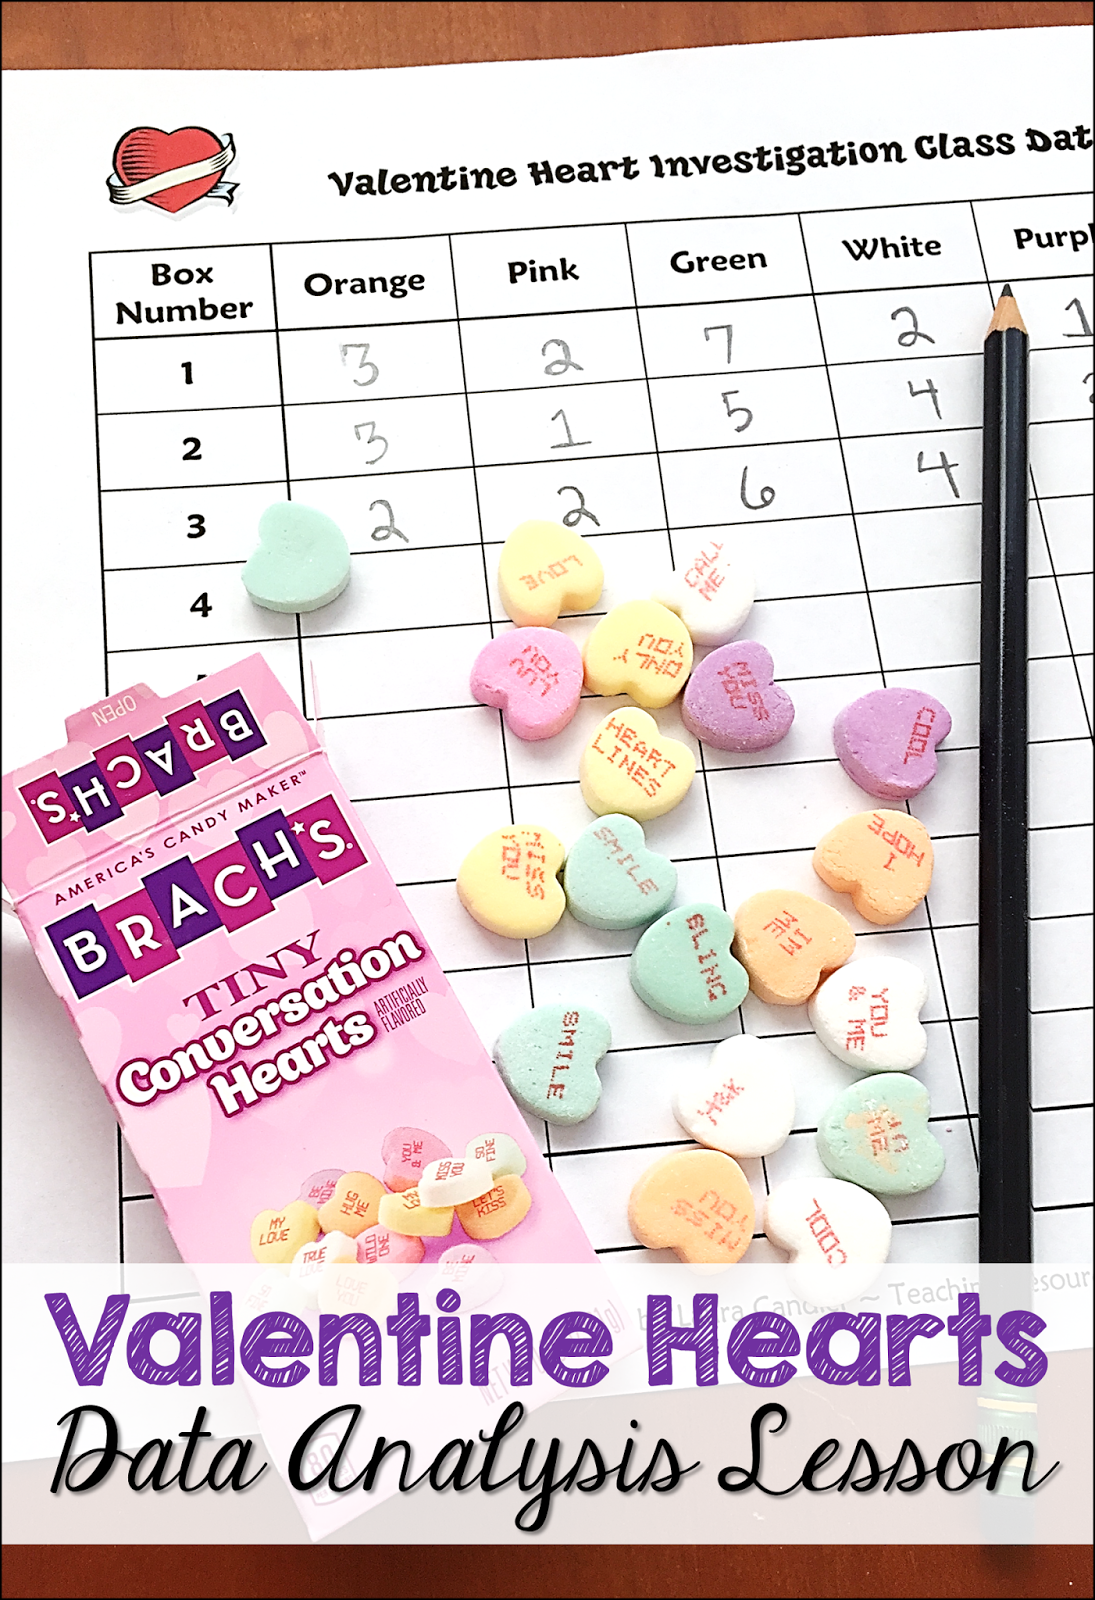 Valentine Hearts Math Investigation Teaching